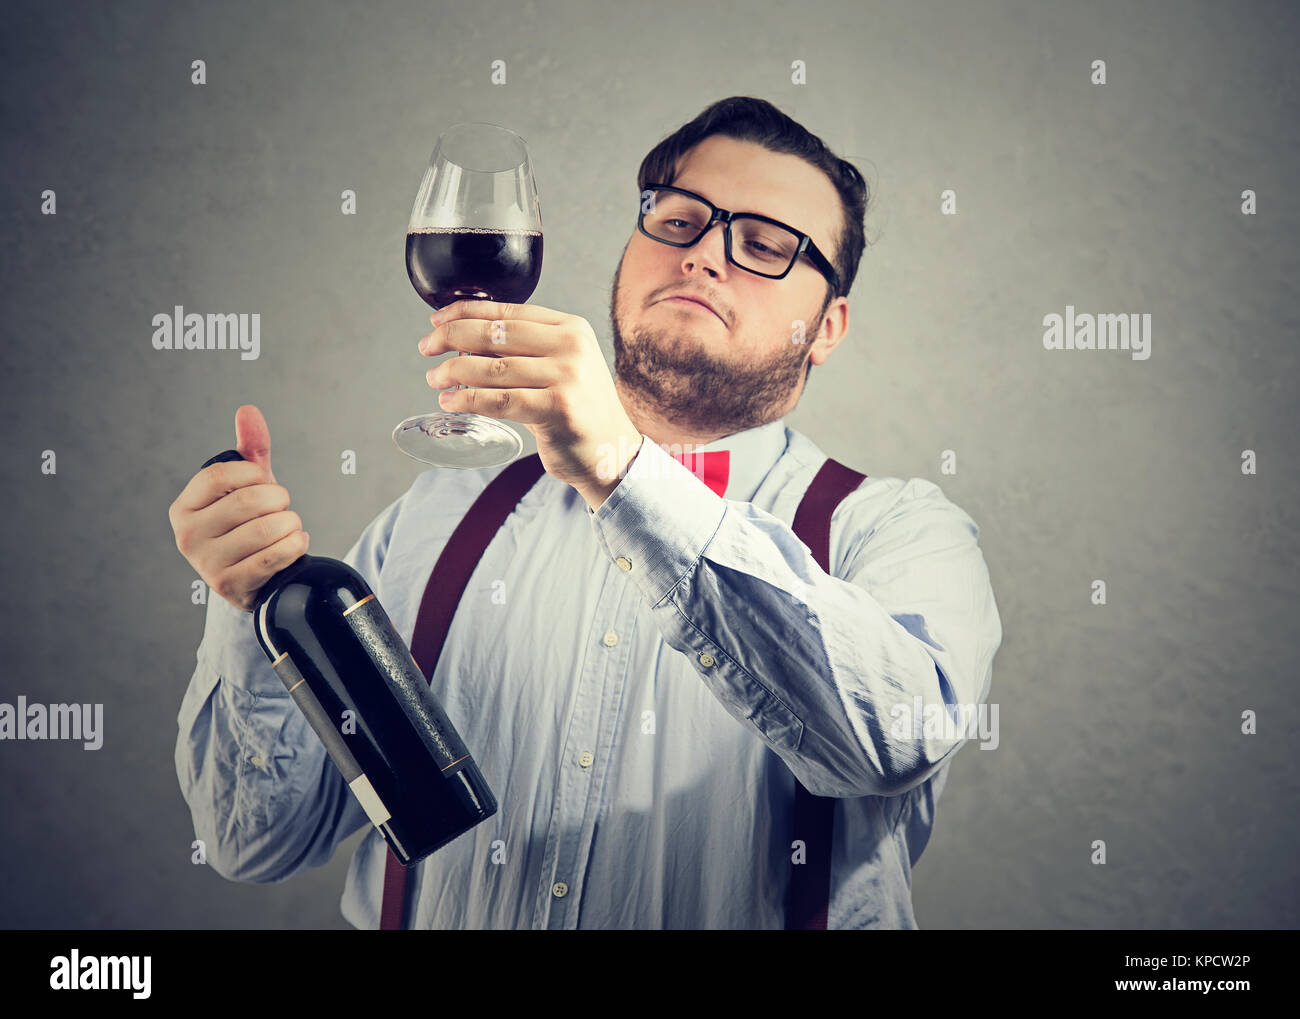 Chubby man in wearing eyeglasses and bow tie holding wineglass and judging drink quality looking overconfident. - Stock Image